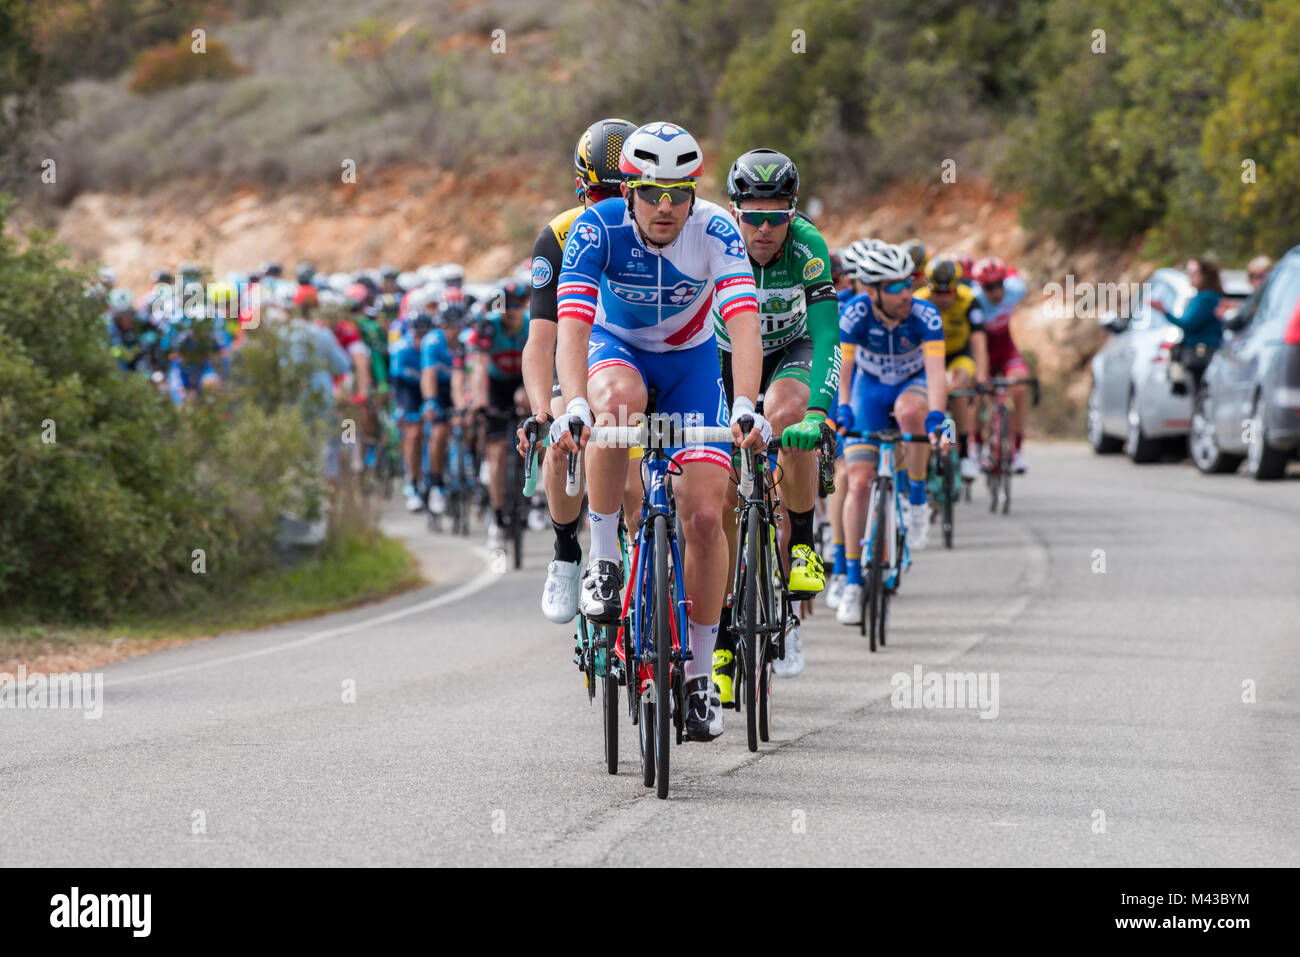 Algarve, Portugal, 14th Feb, 2017, The peleton on the Cat 4 climb of Aldeia dos Matos.  Credit: Craig Rogers Credit: - Stock Image